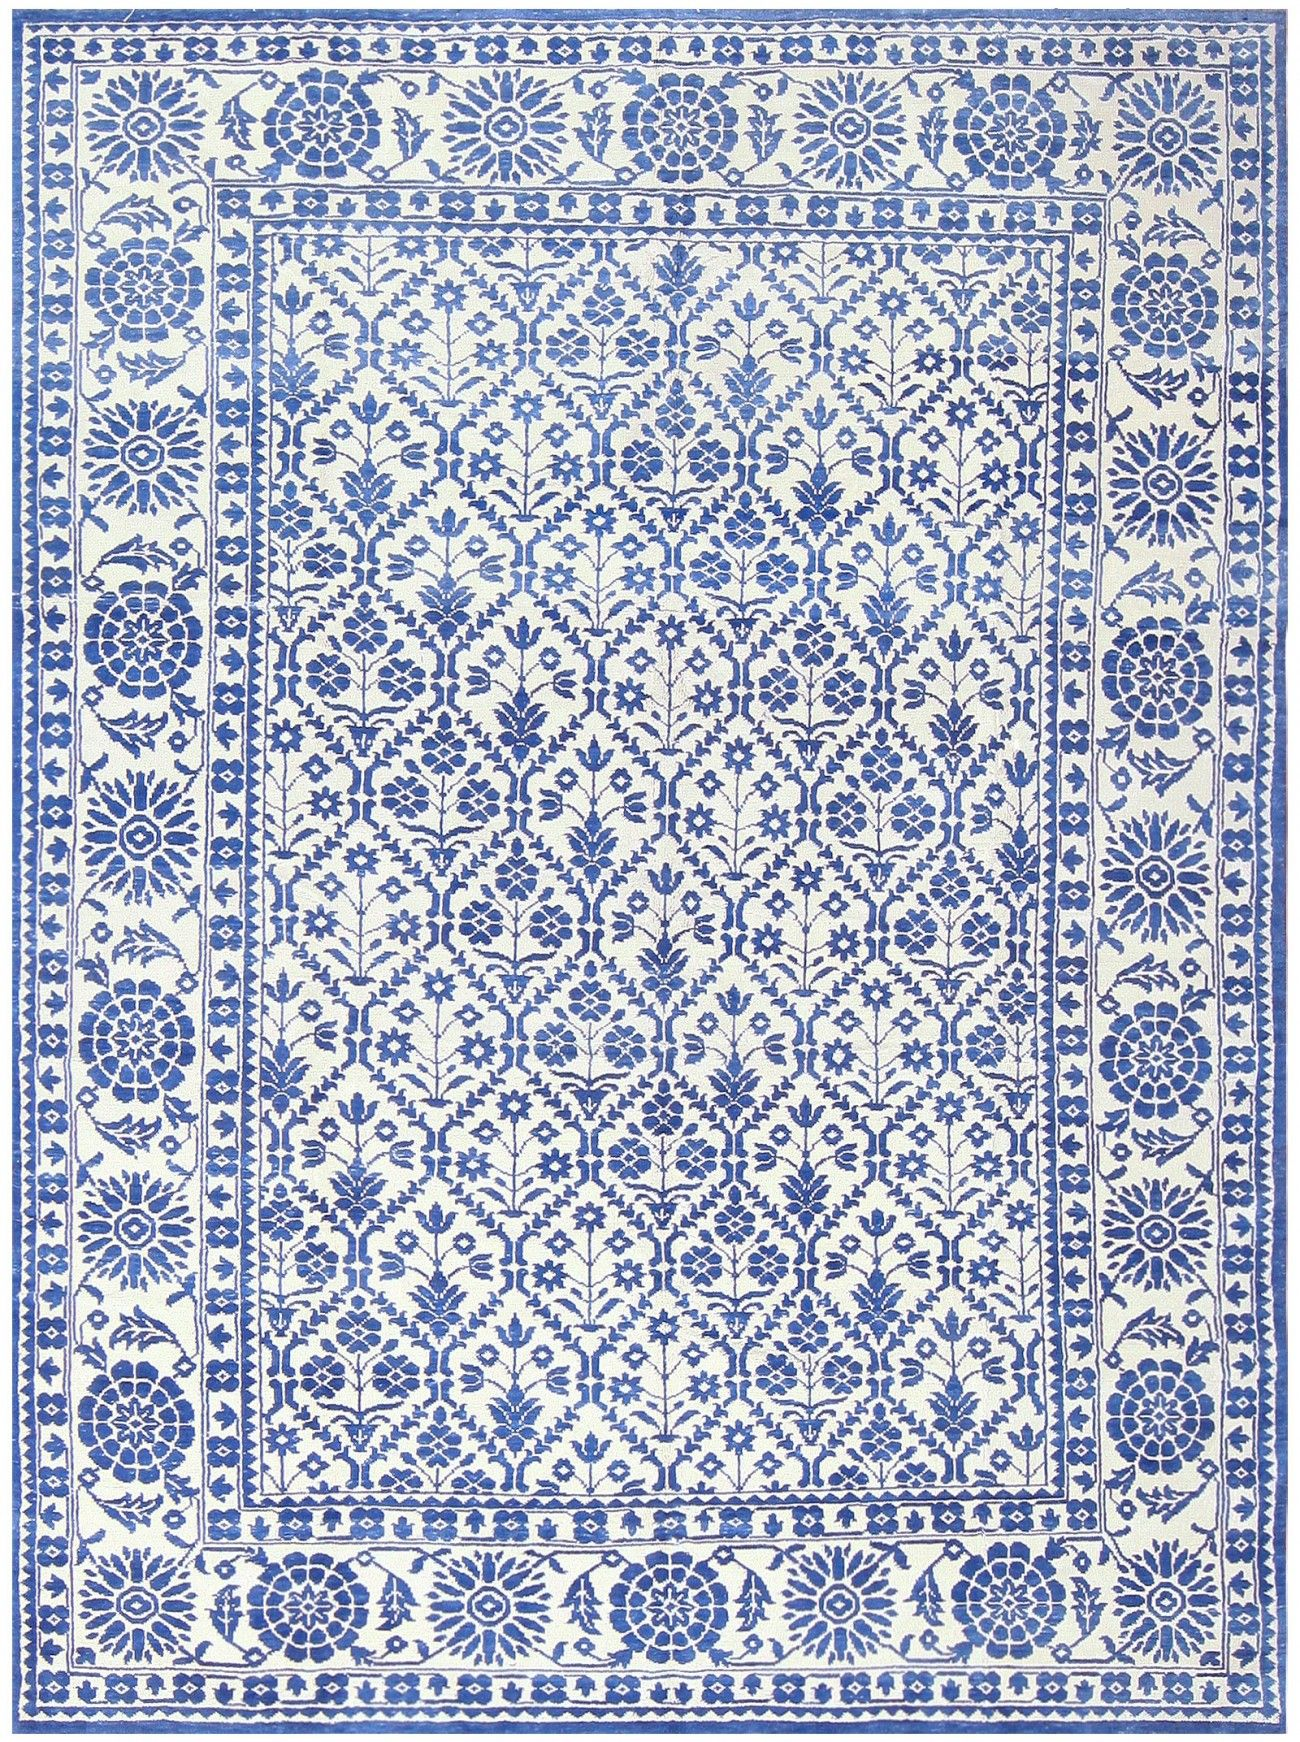 Charming Blue And White Vintage Indian Agra Cotton Rug